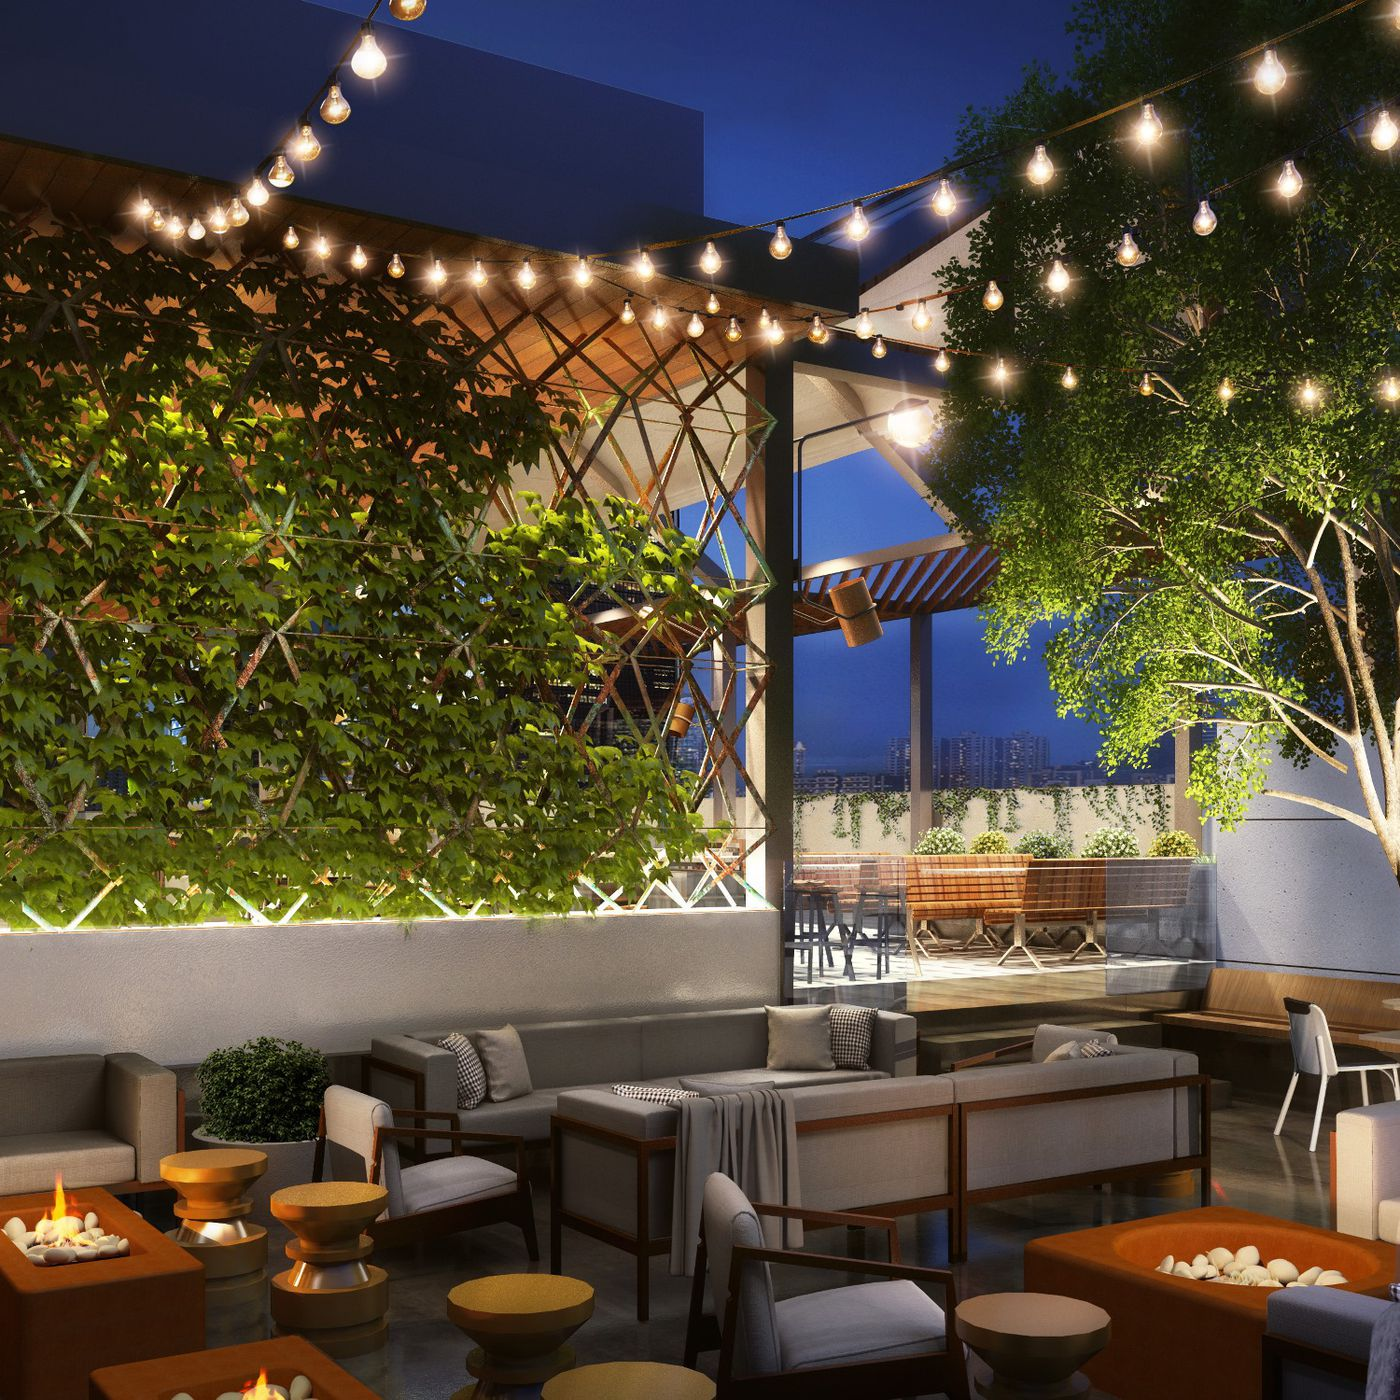 The New Earls At The Pru Will Have A Swanky Rooftop Eater